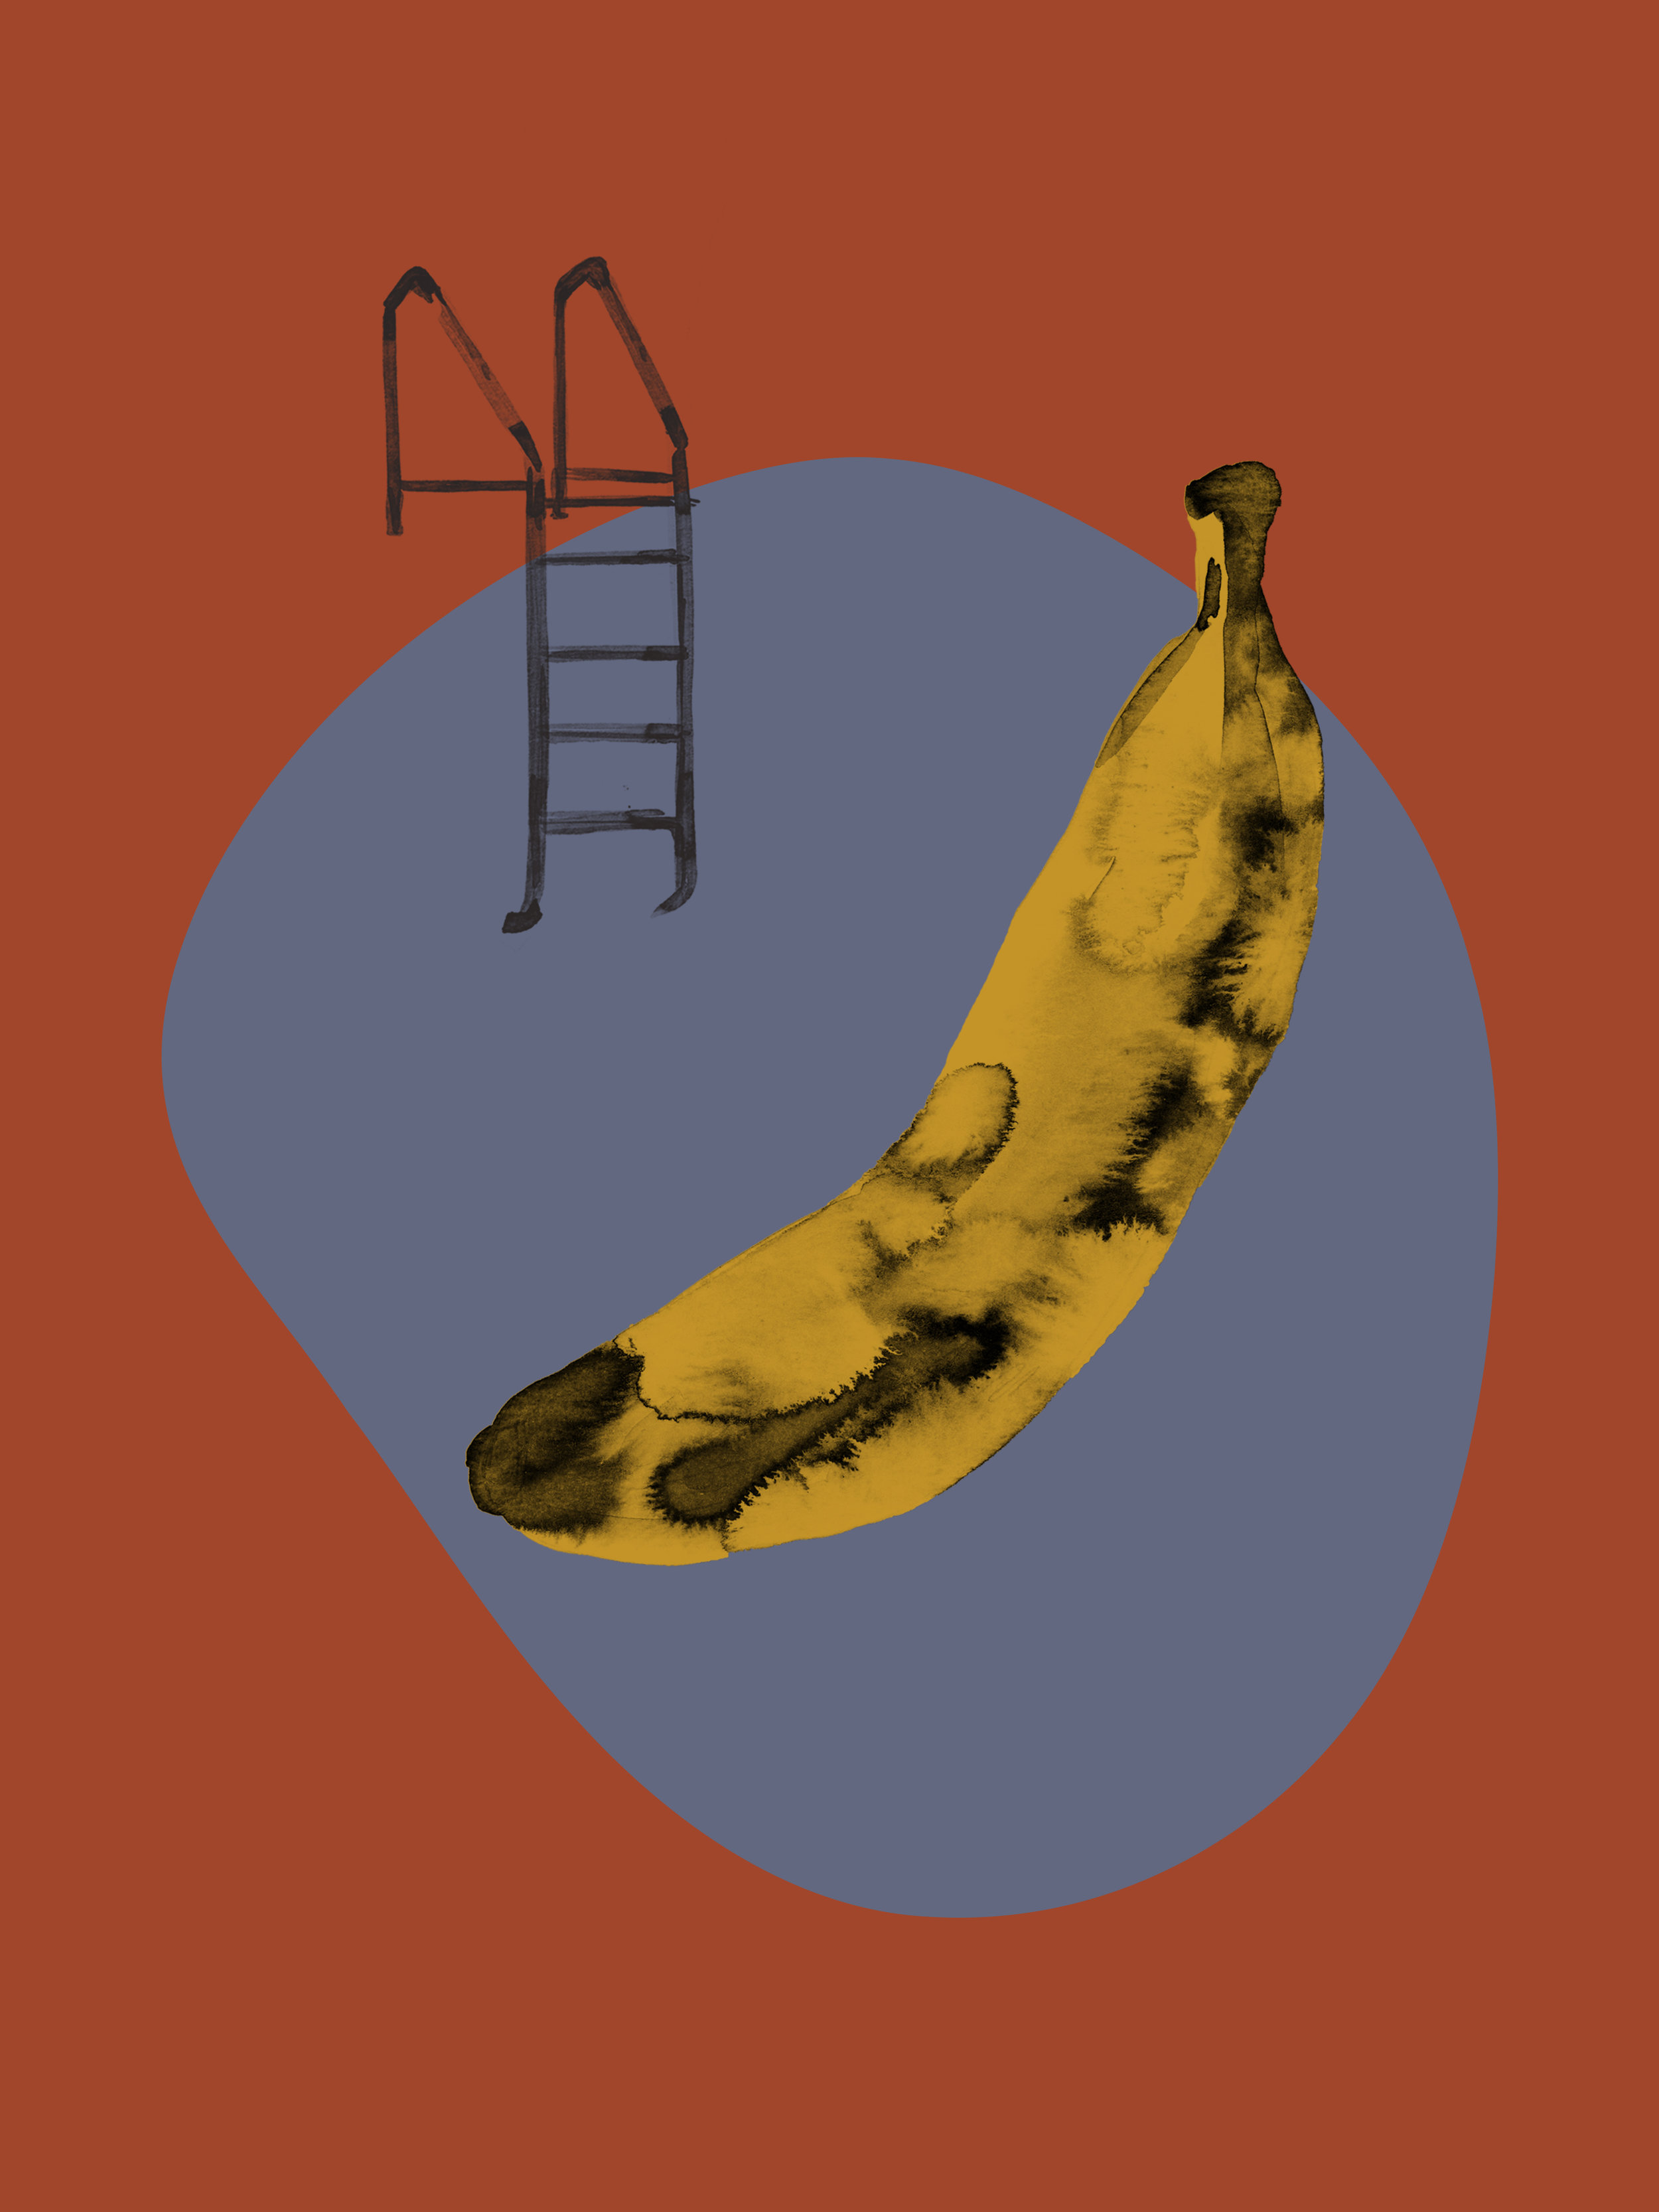 Banana   Ink and Photoshop  2018, Fruit Series